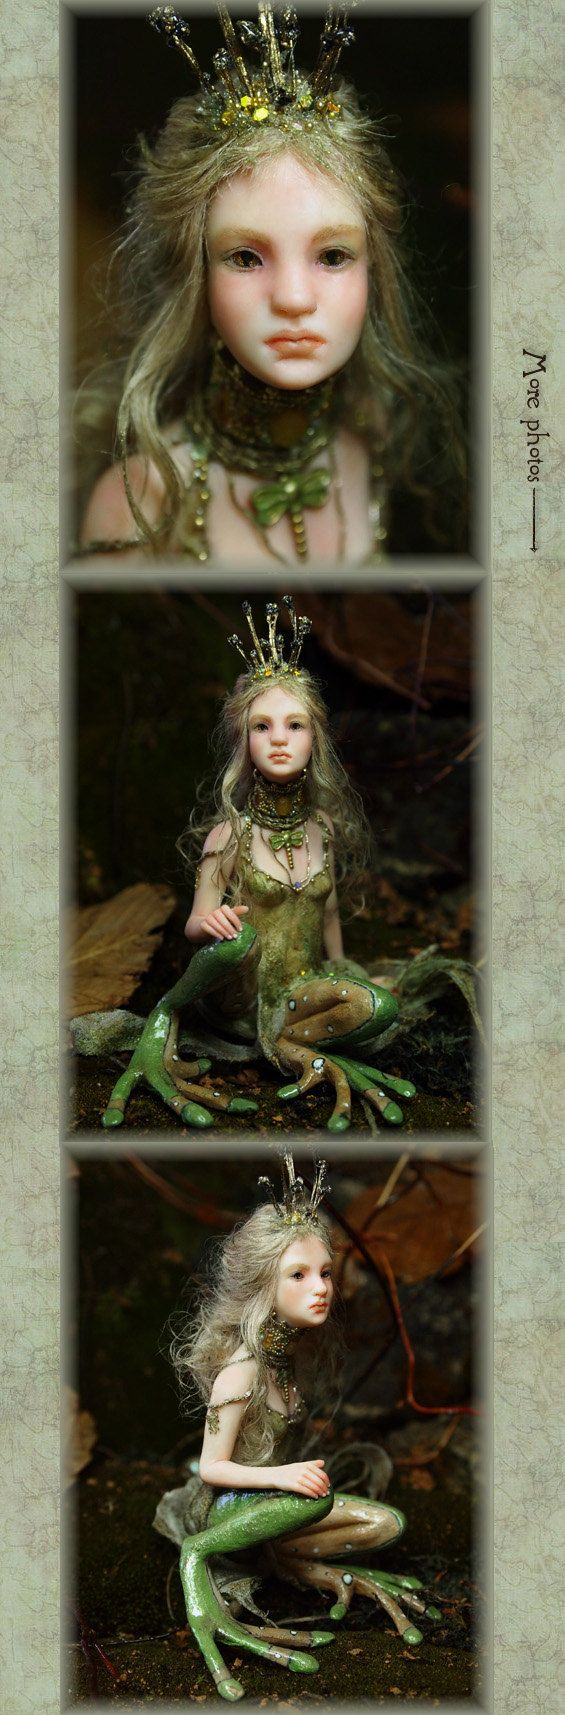 Frog Princess Hand-sculpted OOAK Art Doll by NenufarBlanco on Etsy